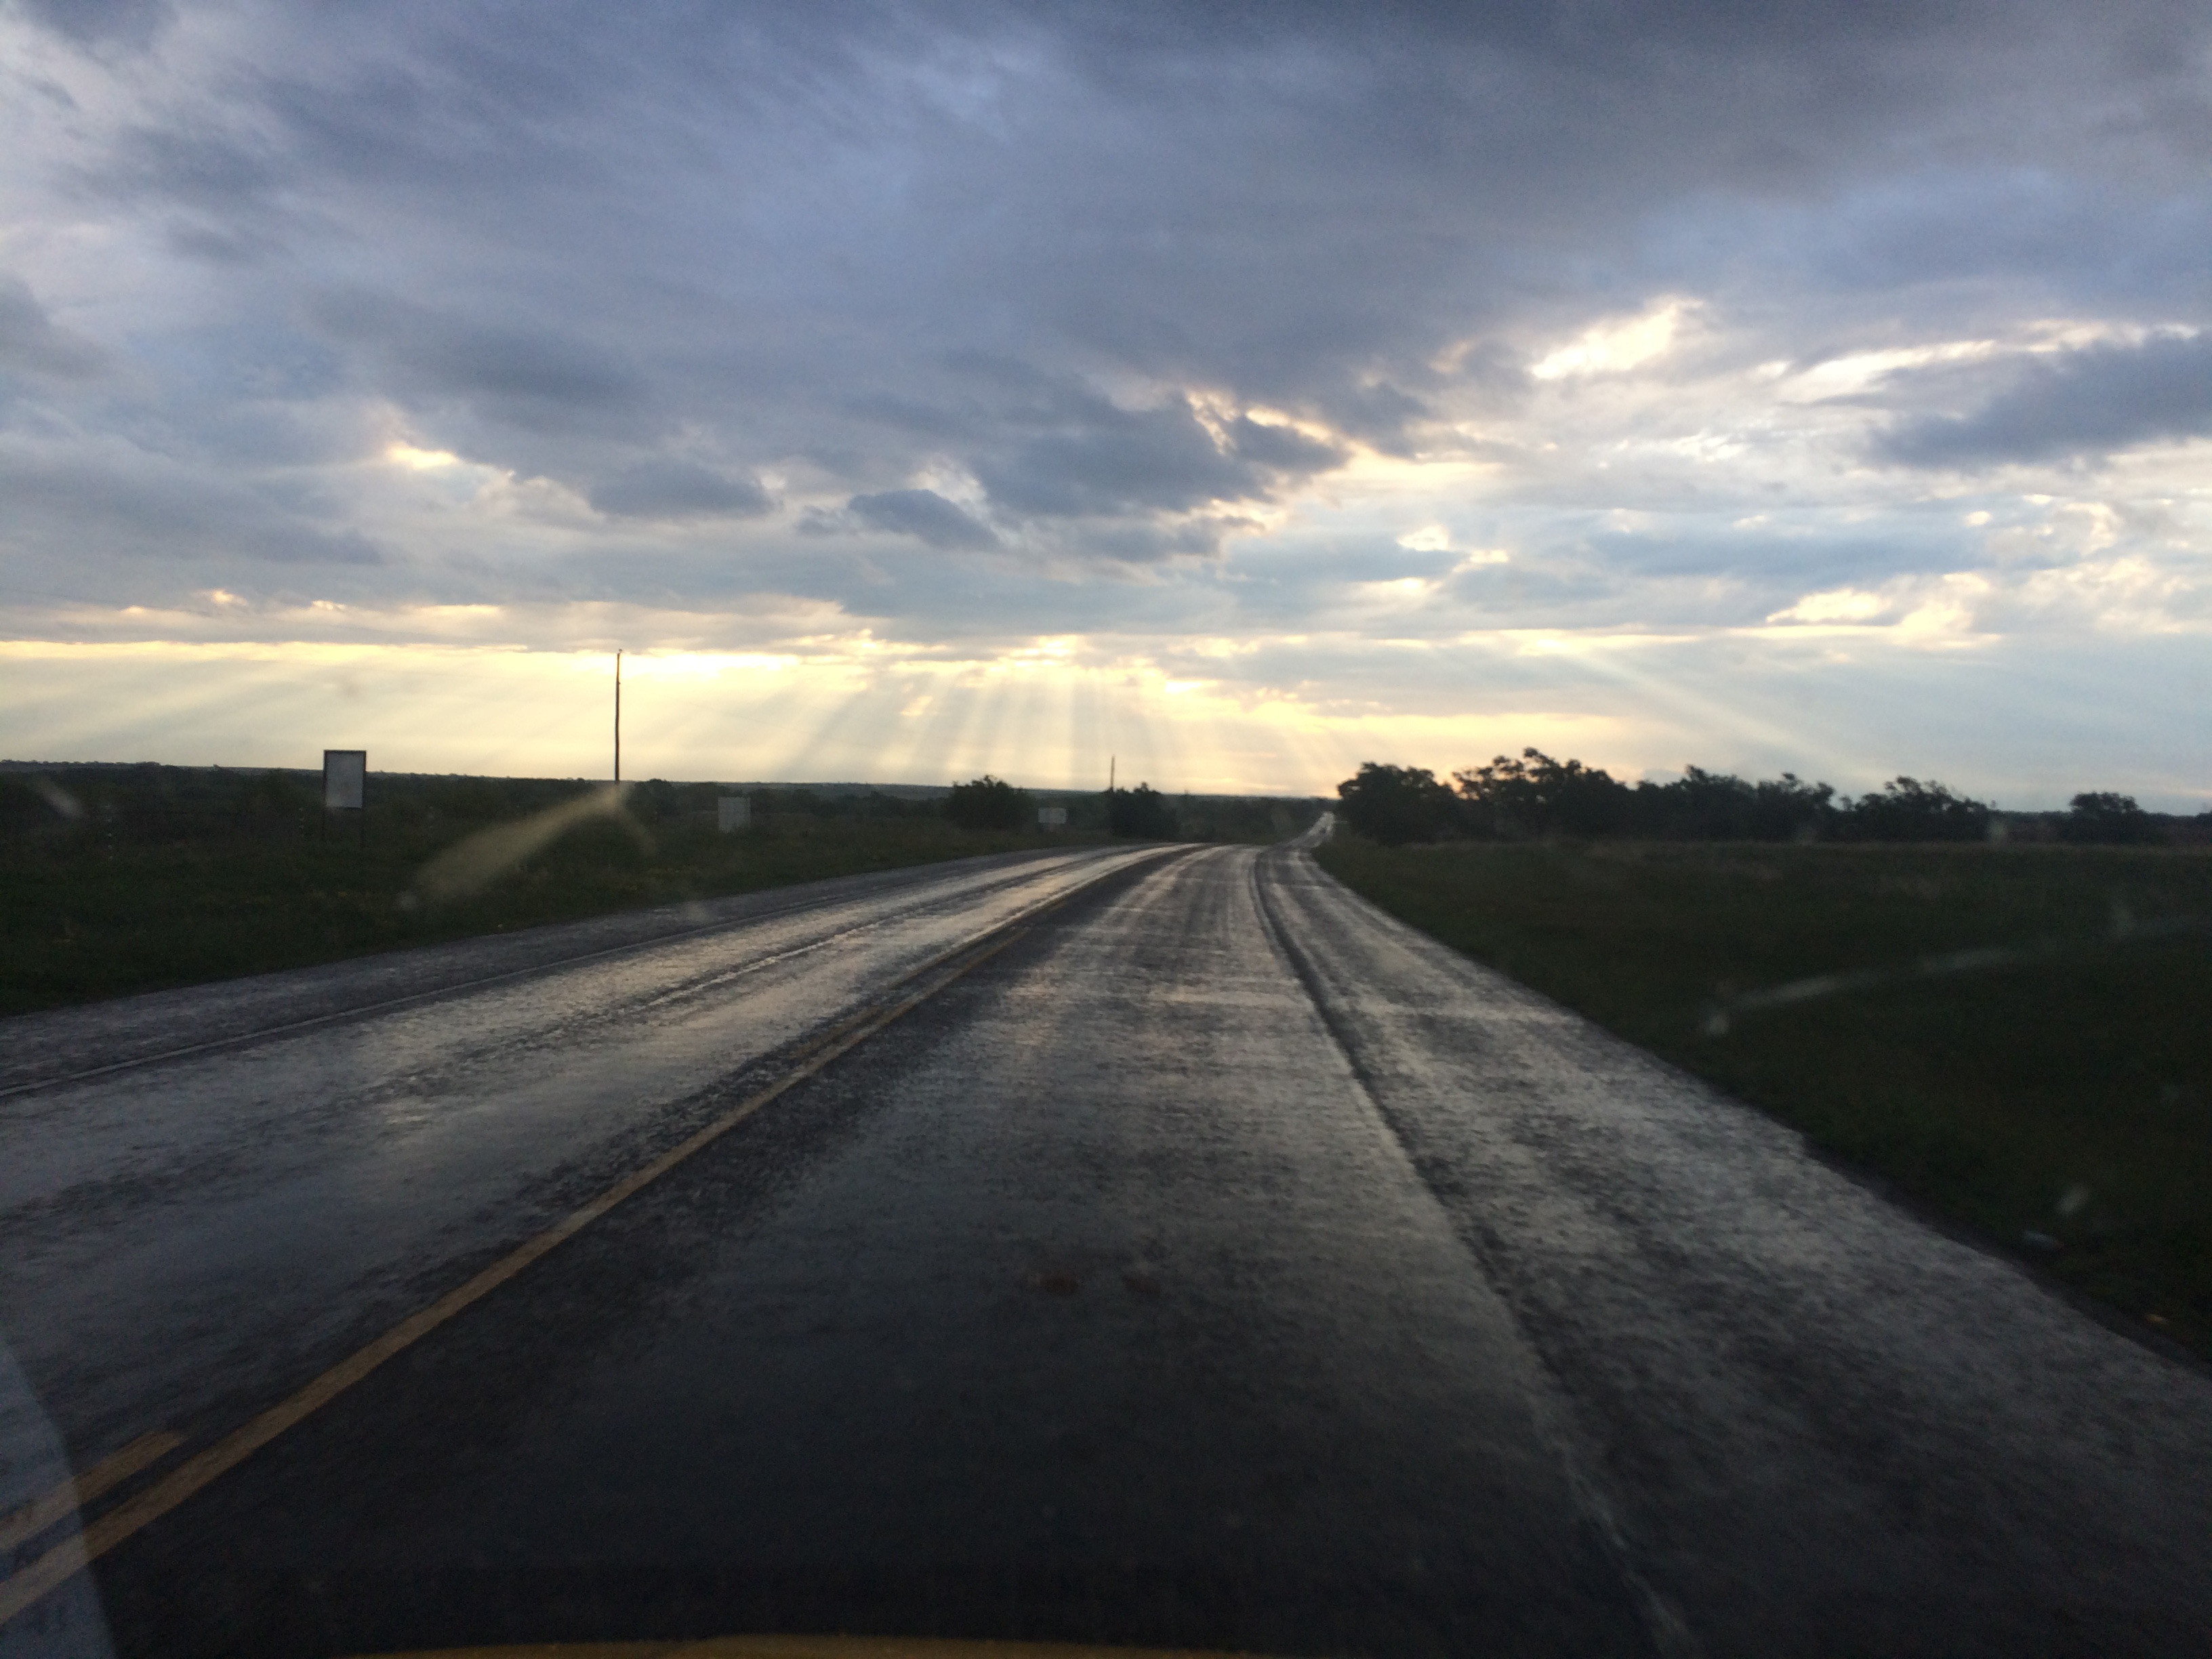 Sunshine streaks through the clouds early morning on the Texas panhandle. Photo by Clay Duda.